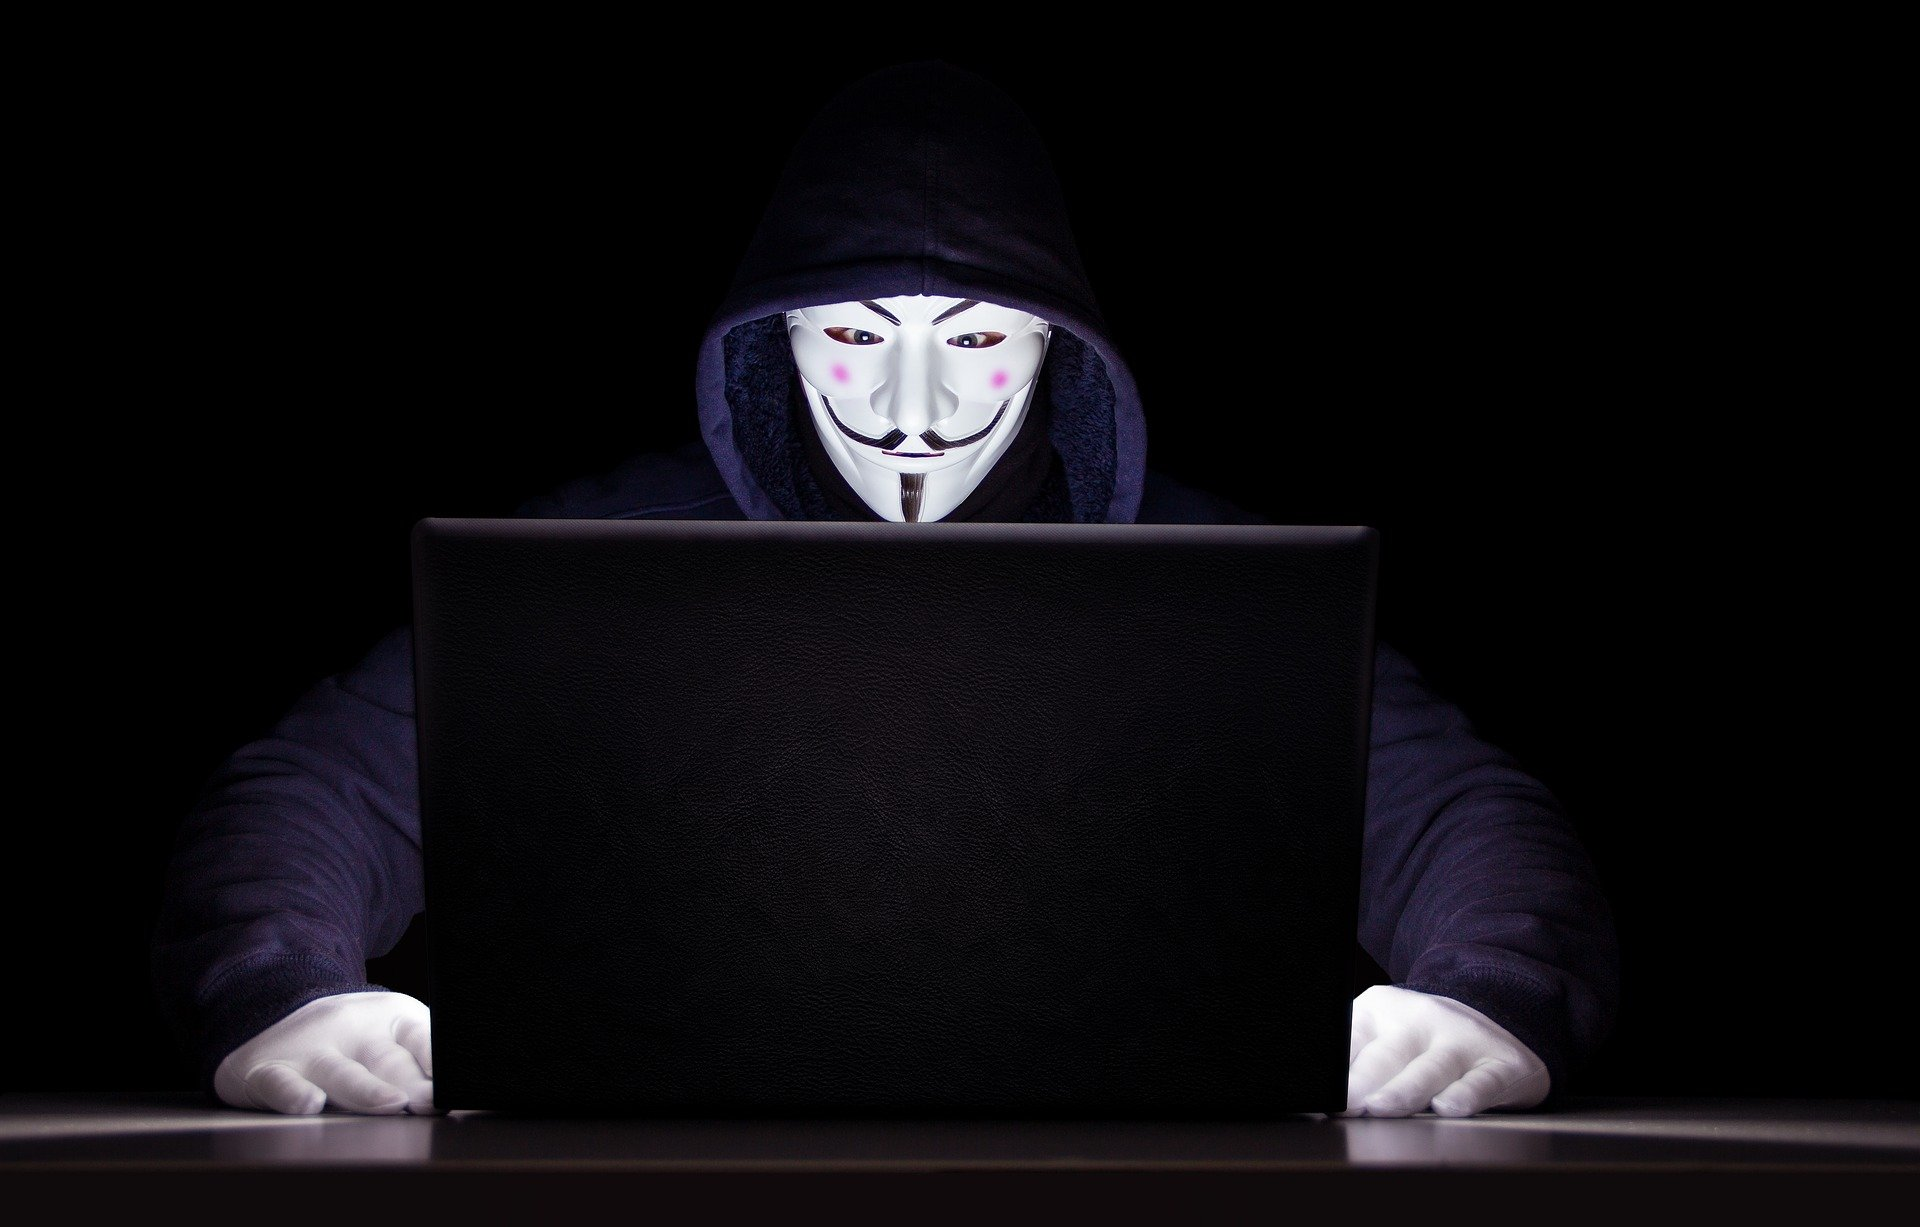 Two Non-Profits Have Received $20,000 from Hackers